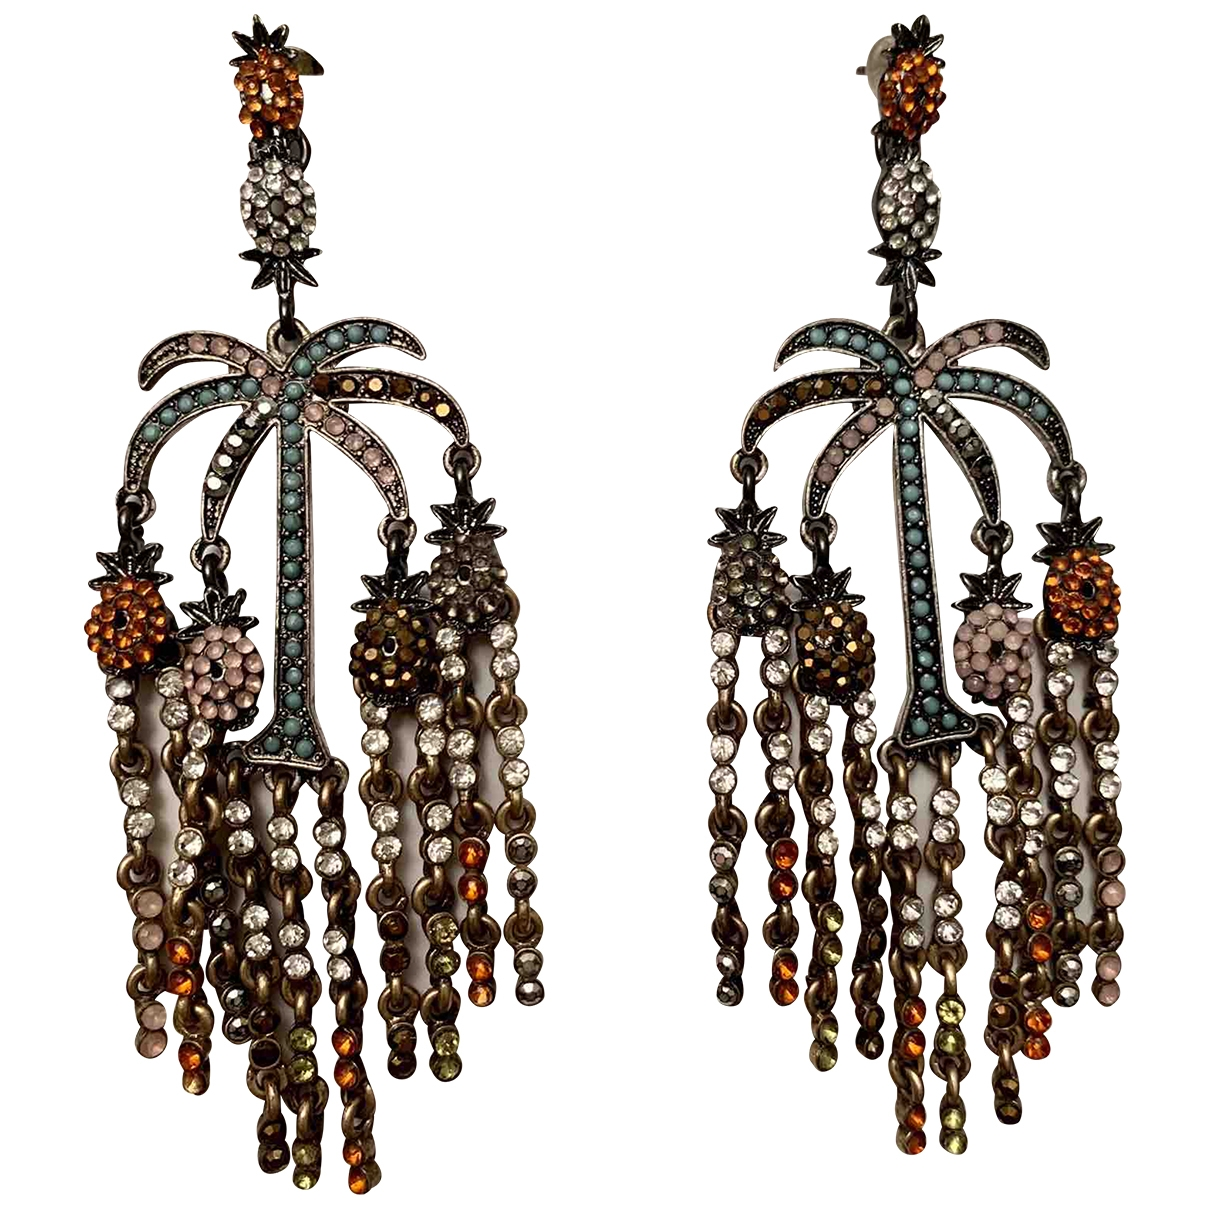 Non Signe / Unsigned Motifs Floraux OhrRing in  Bunt Metall